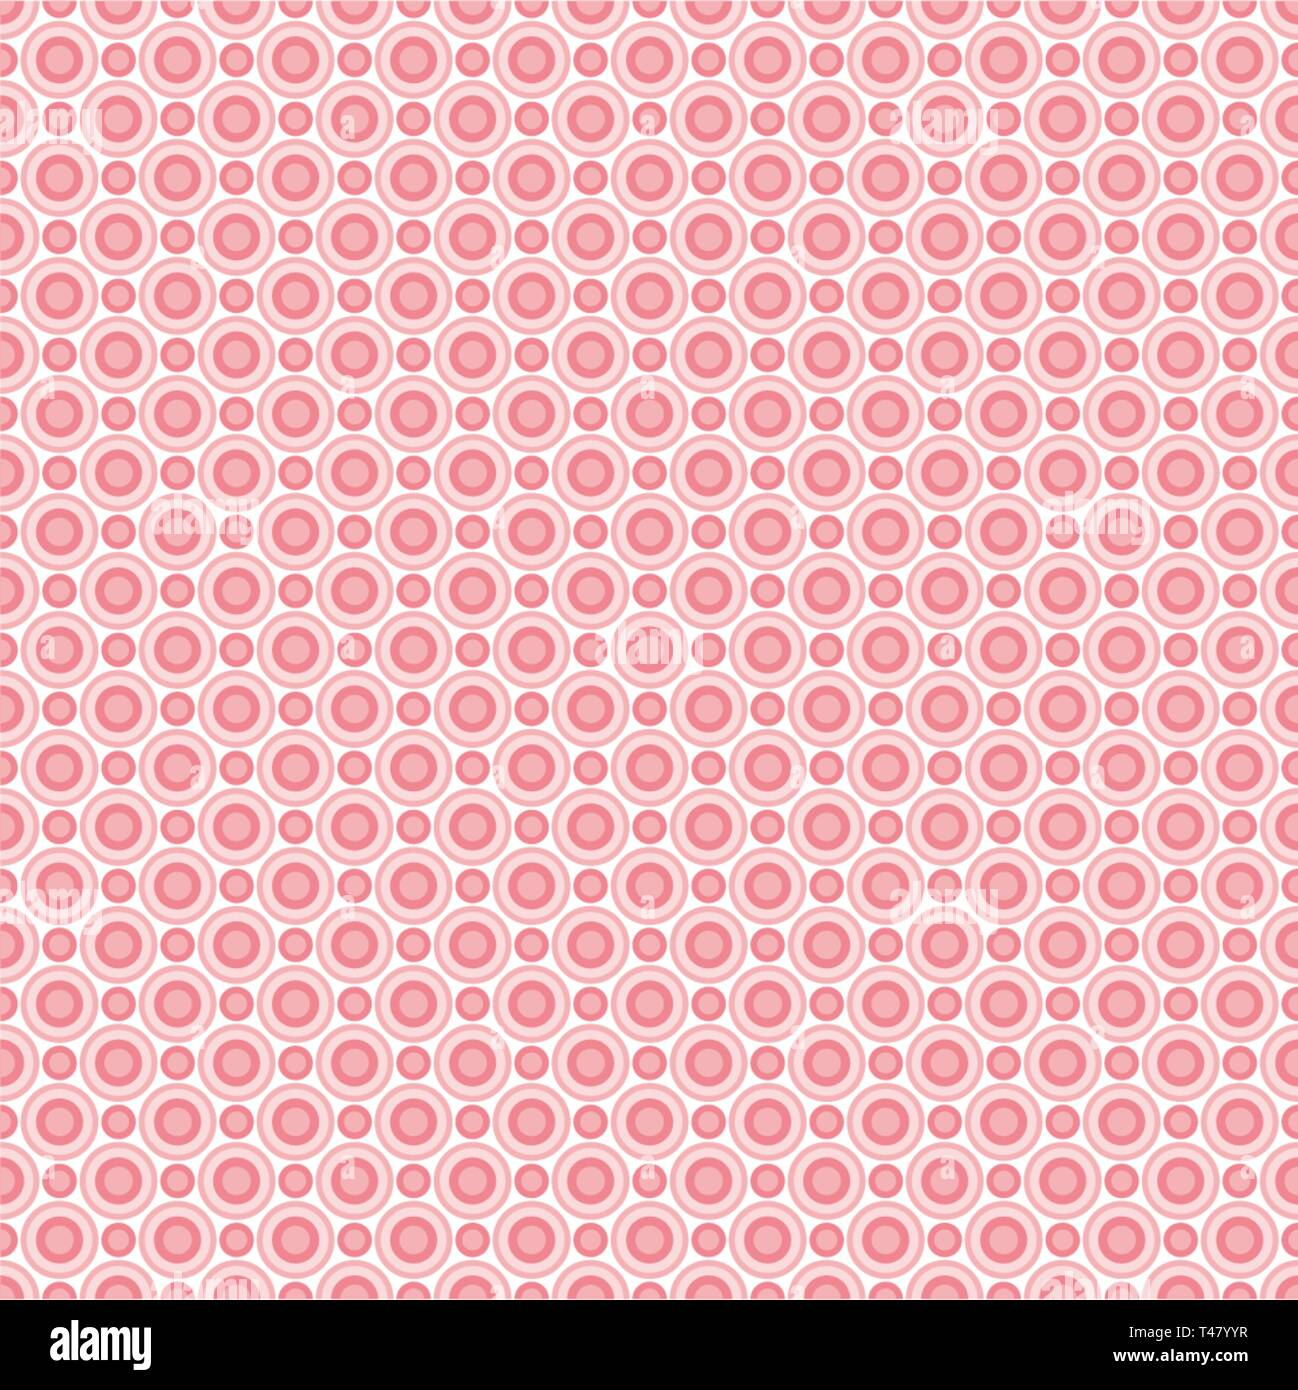 Seamless pattern of abstract pink circles for fabrics, wallpapers, tablecloths, prints and designs. EPS (vector) file has a pattern swatch that will s - Stock Vector